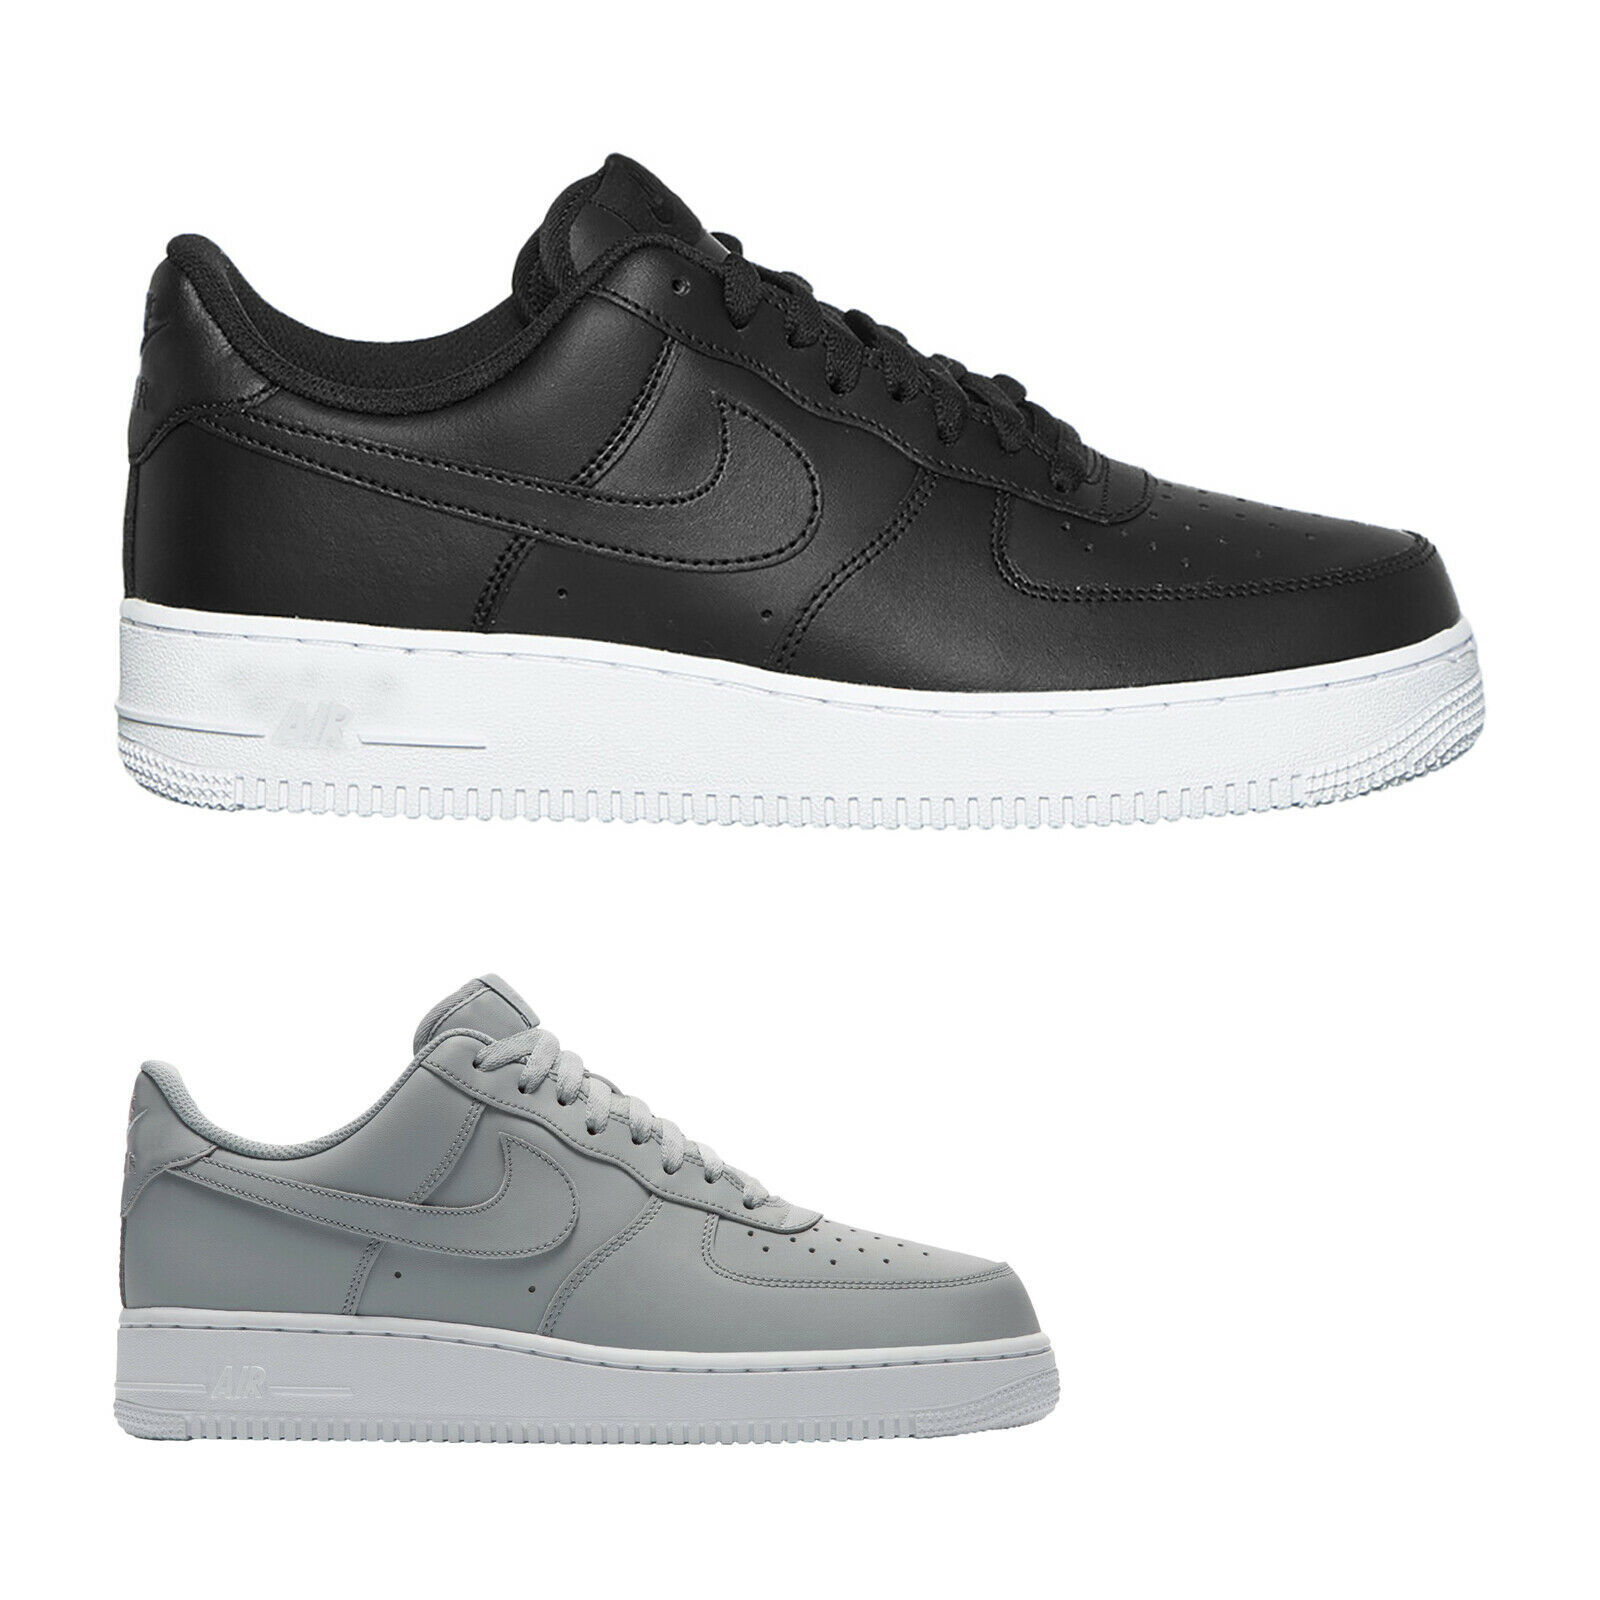 Nike Air Force 1 07 Leather Casual Low-Top Sneakers Mens Trainers